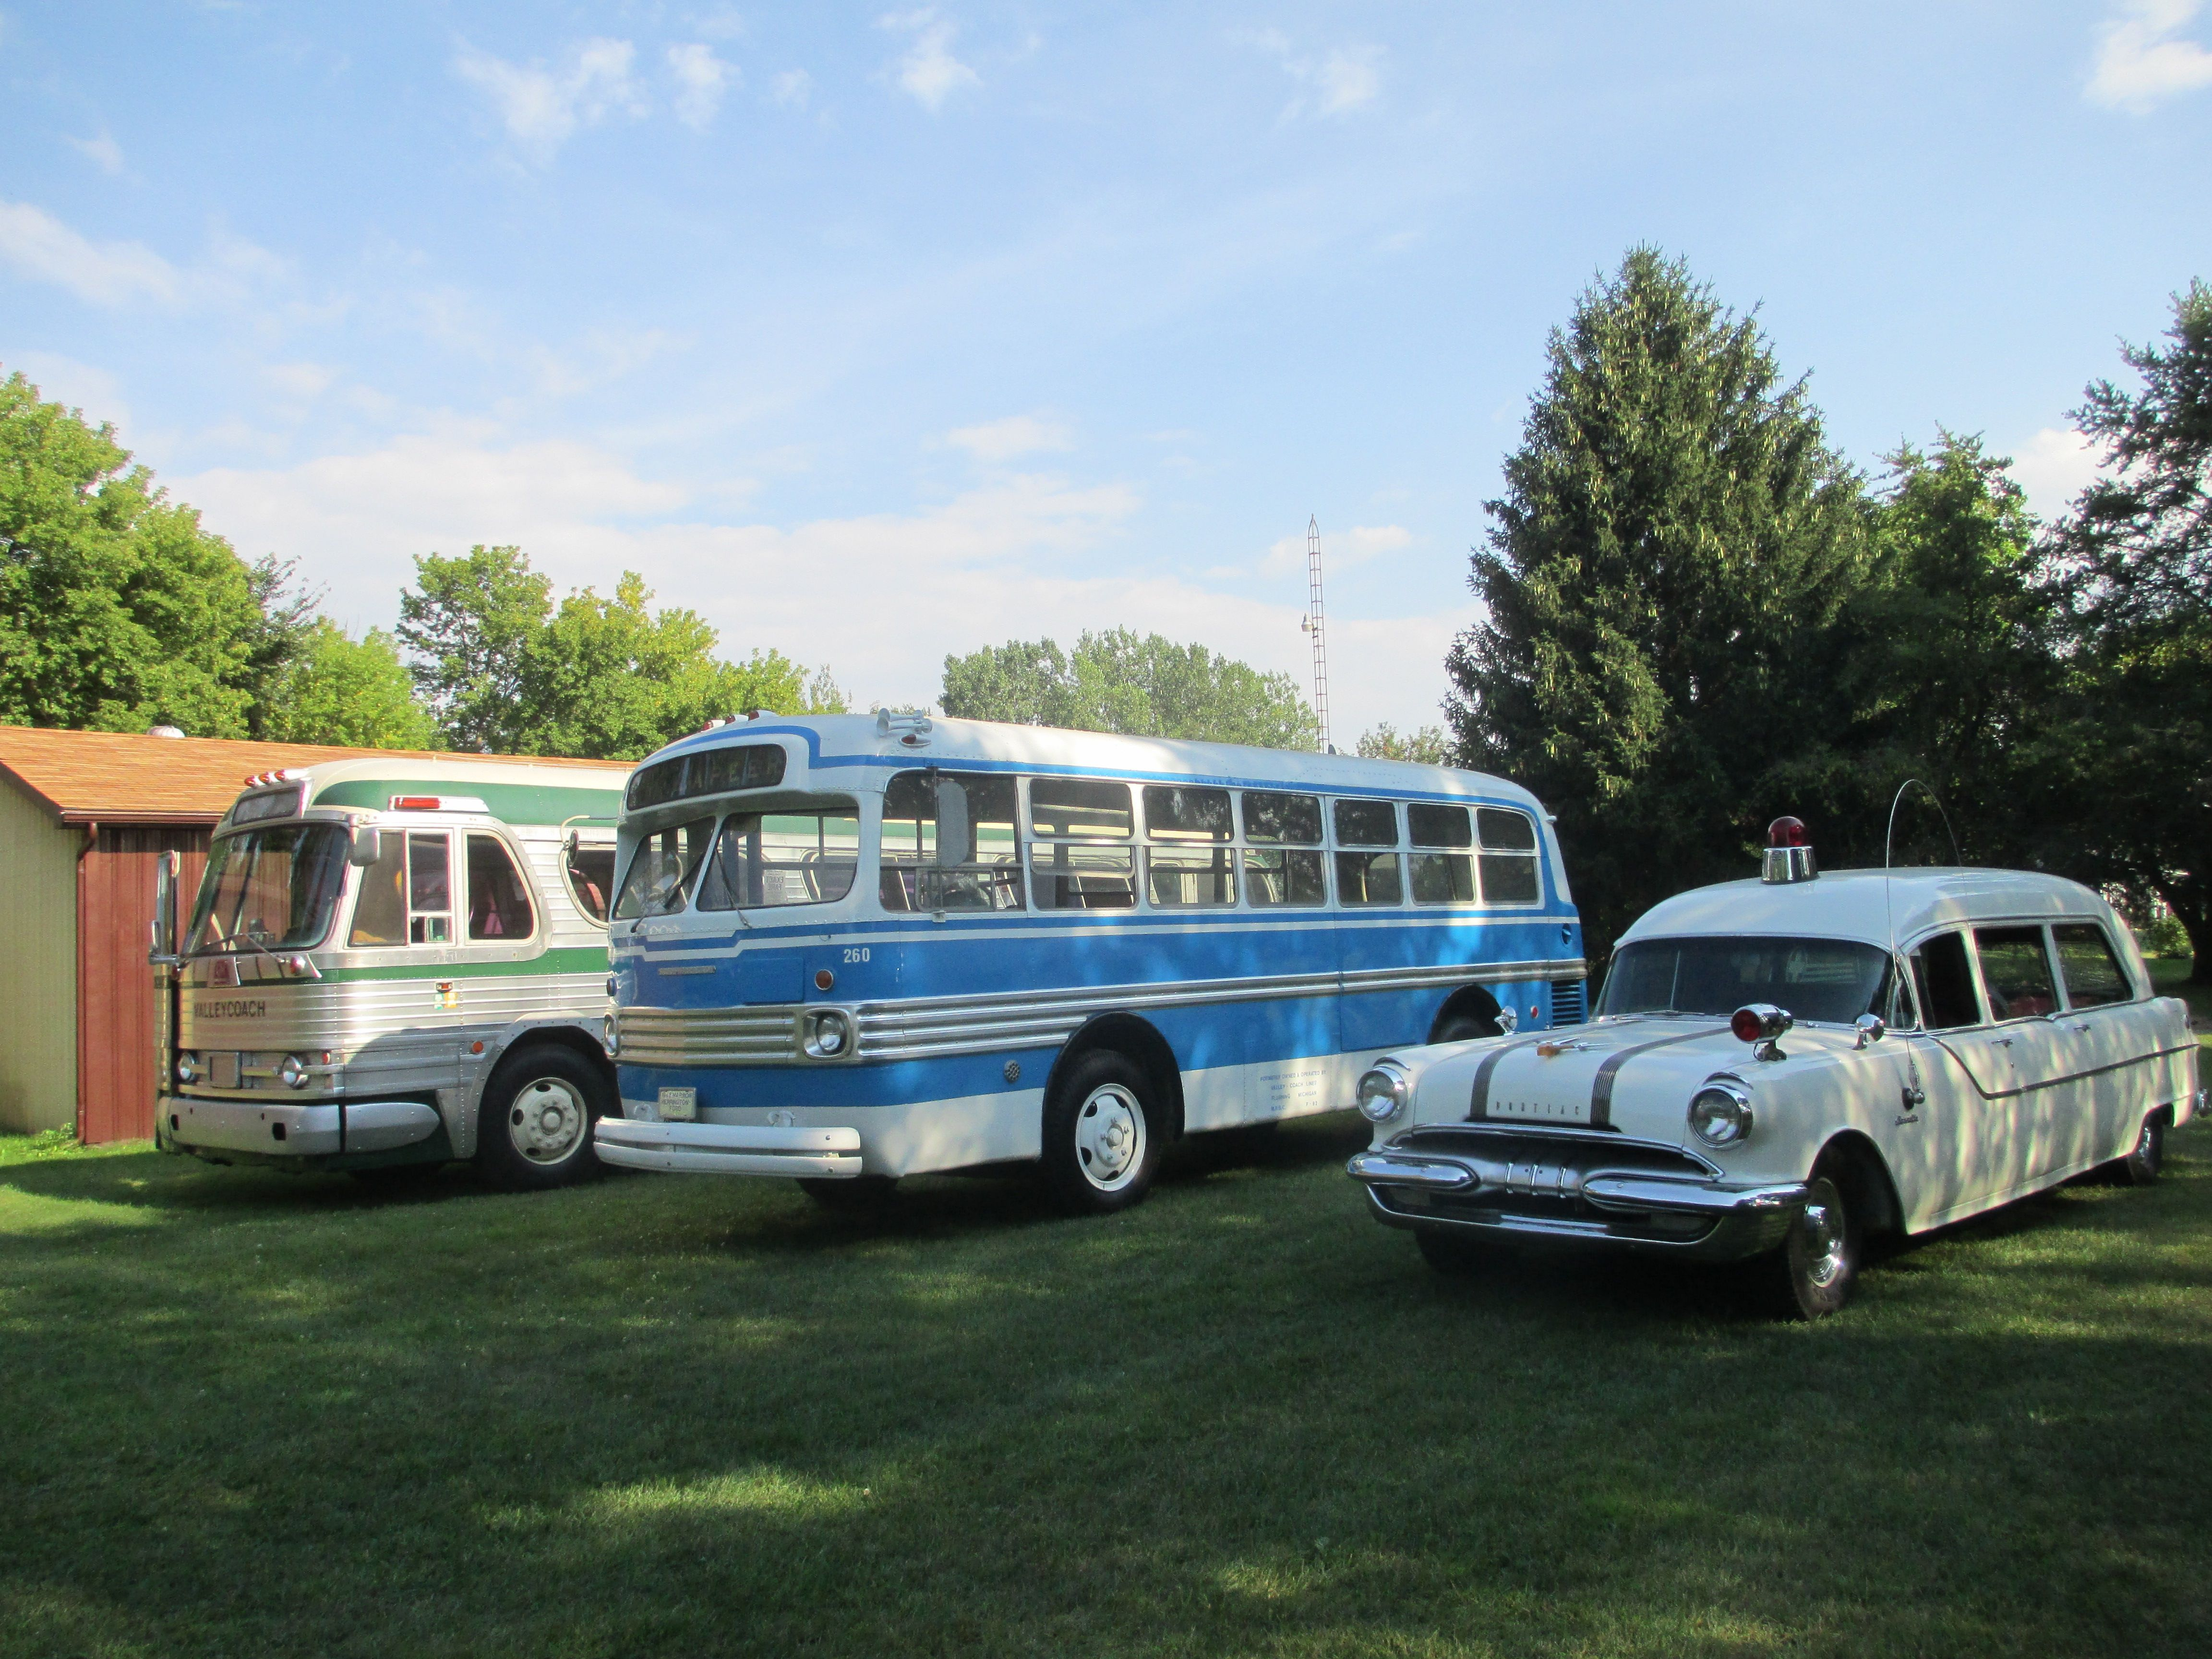 1948 Marmon Herrington Ford 8mb Valley Coach Lines Bus 260 In